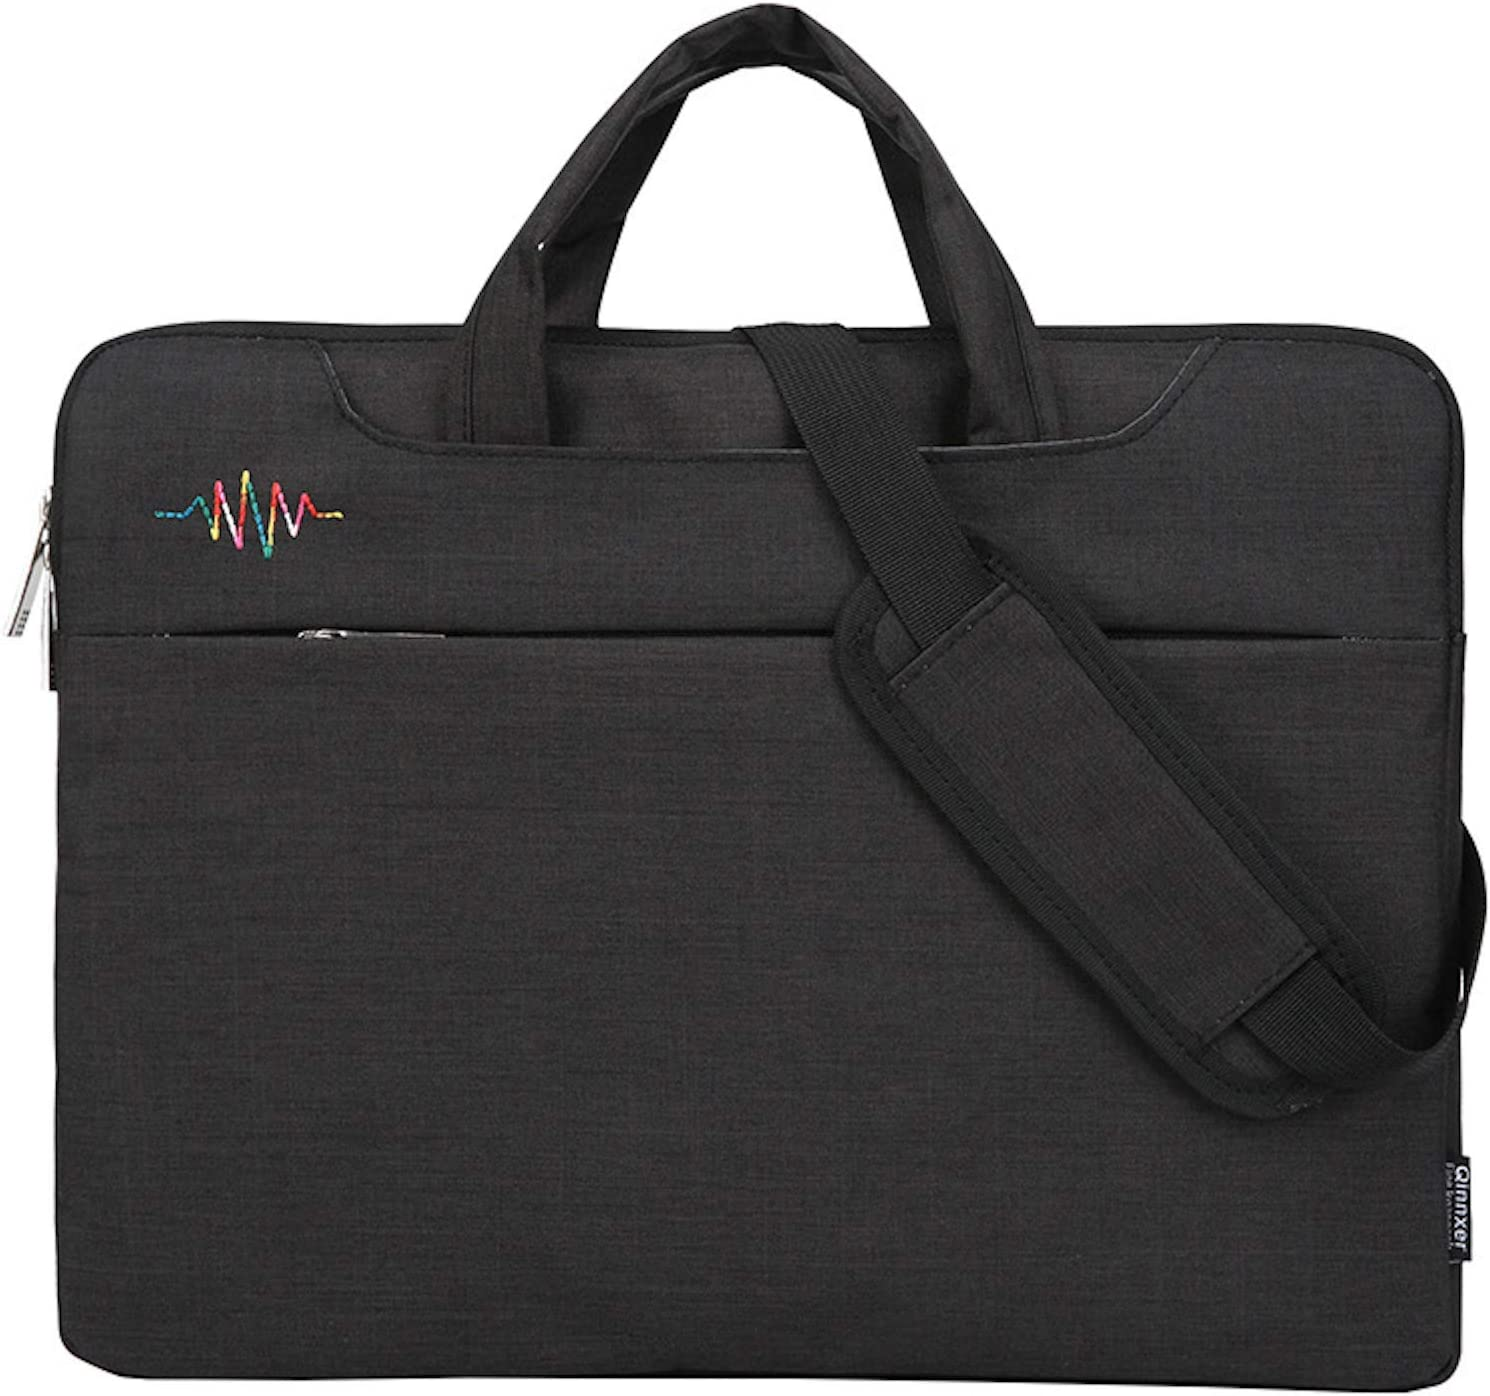 Elonglin Laptop Bag 13/14/15.6 Inch Briefcase Shoulder Tablet Satchel Sleeves Black 14inch